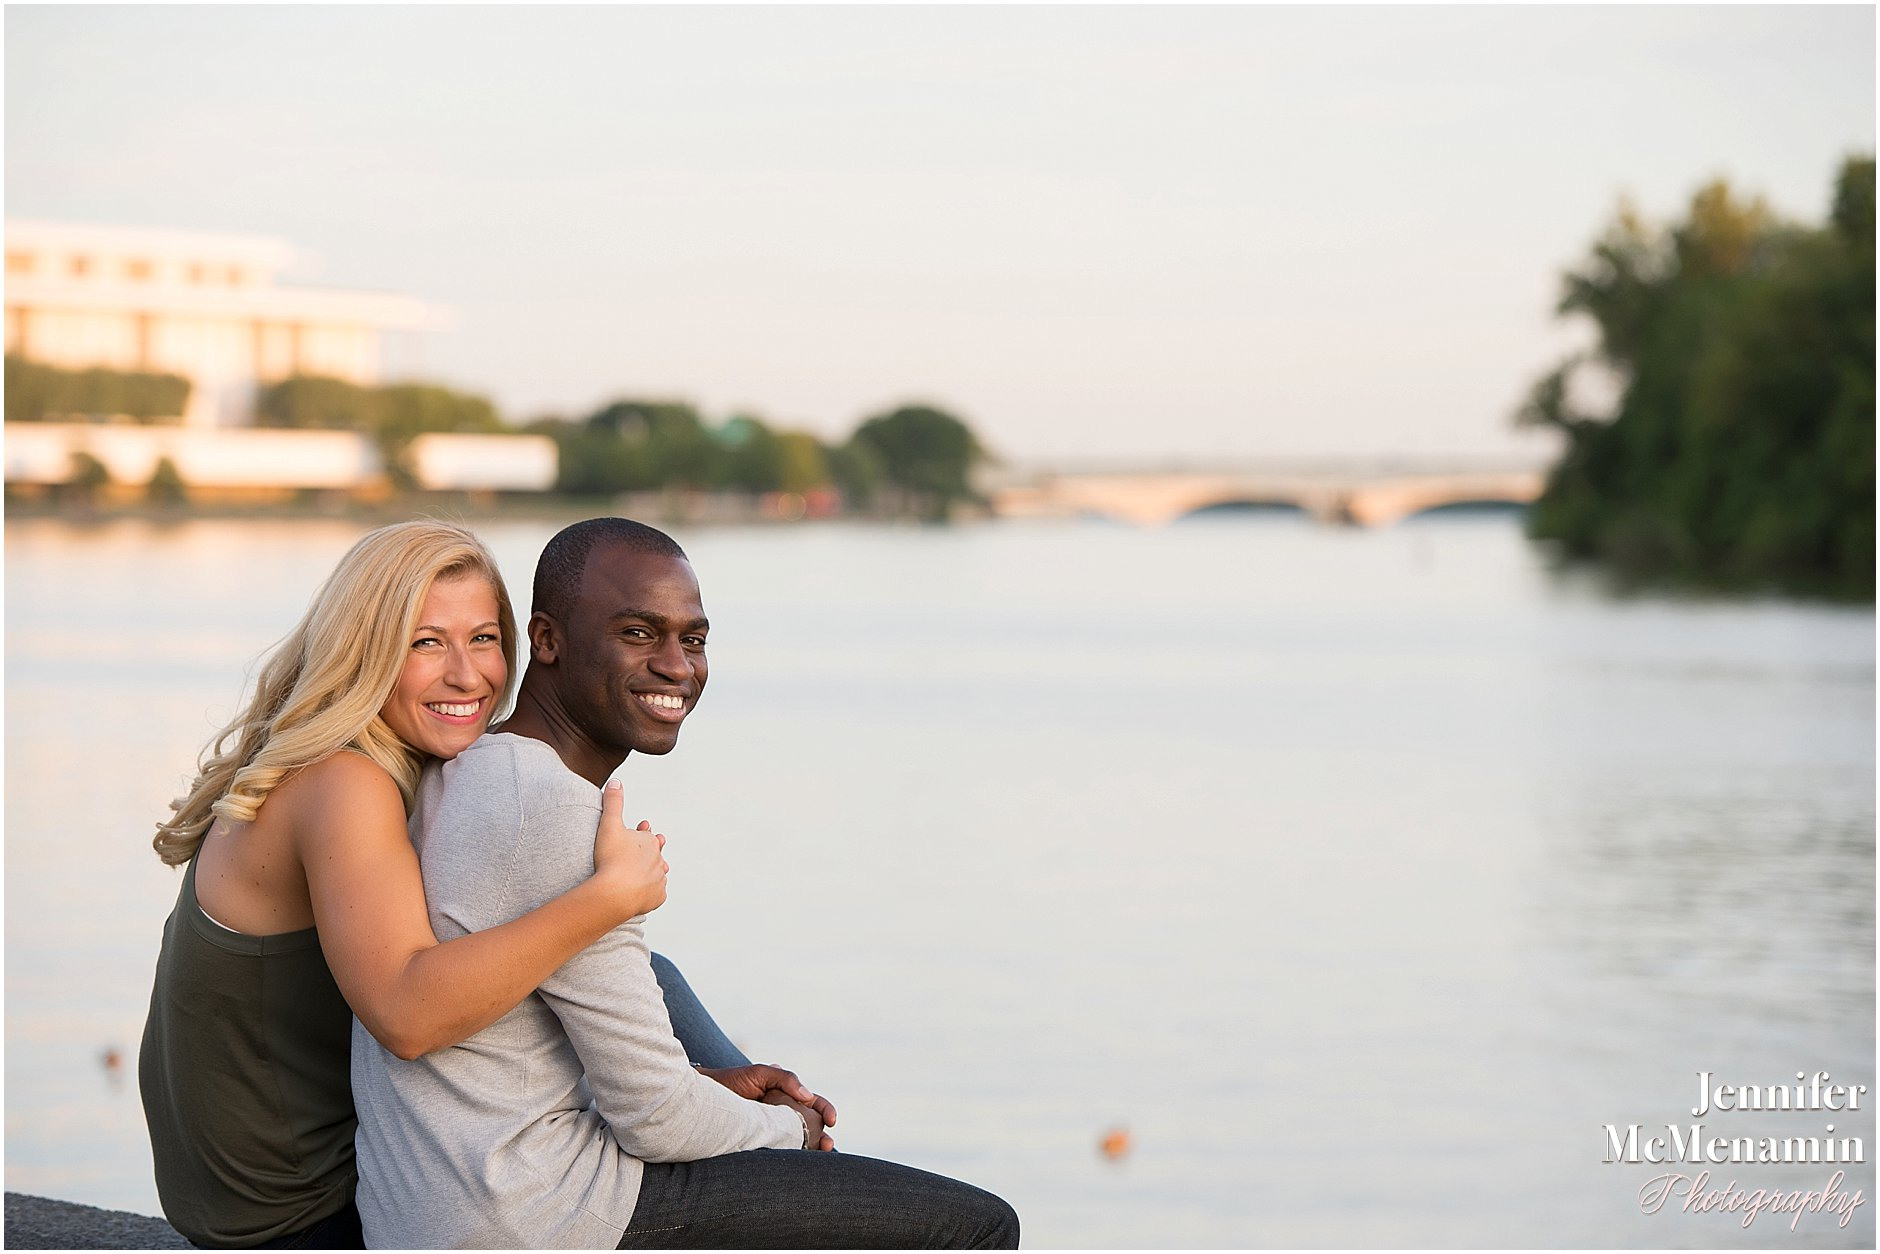 294-FrammAgorsor_00928-0158_Jennifer-McMenamin-Photography-DC-Engagement-photos